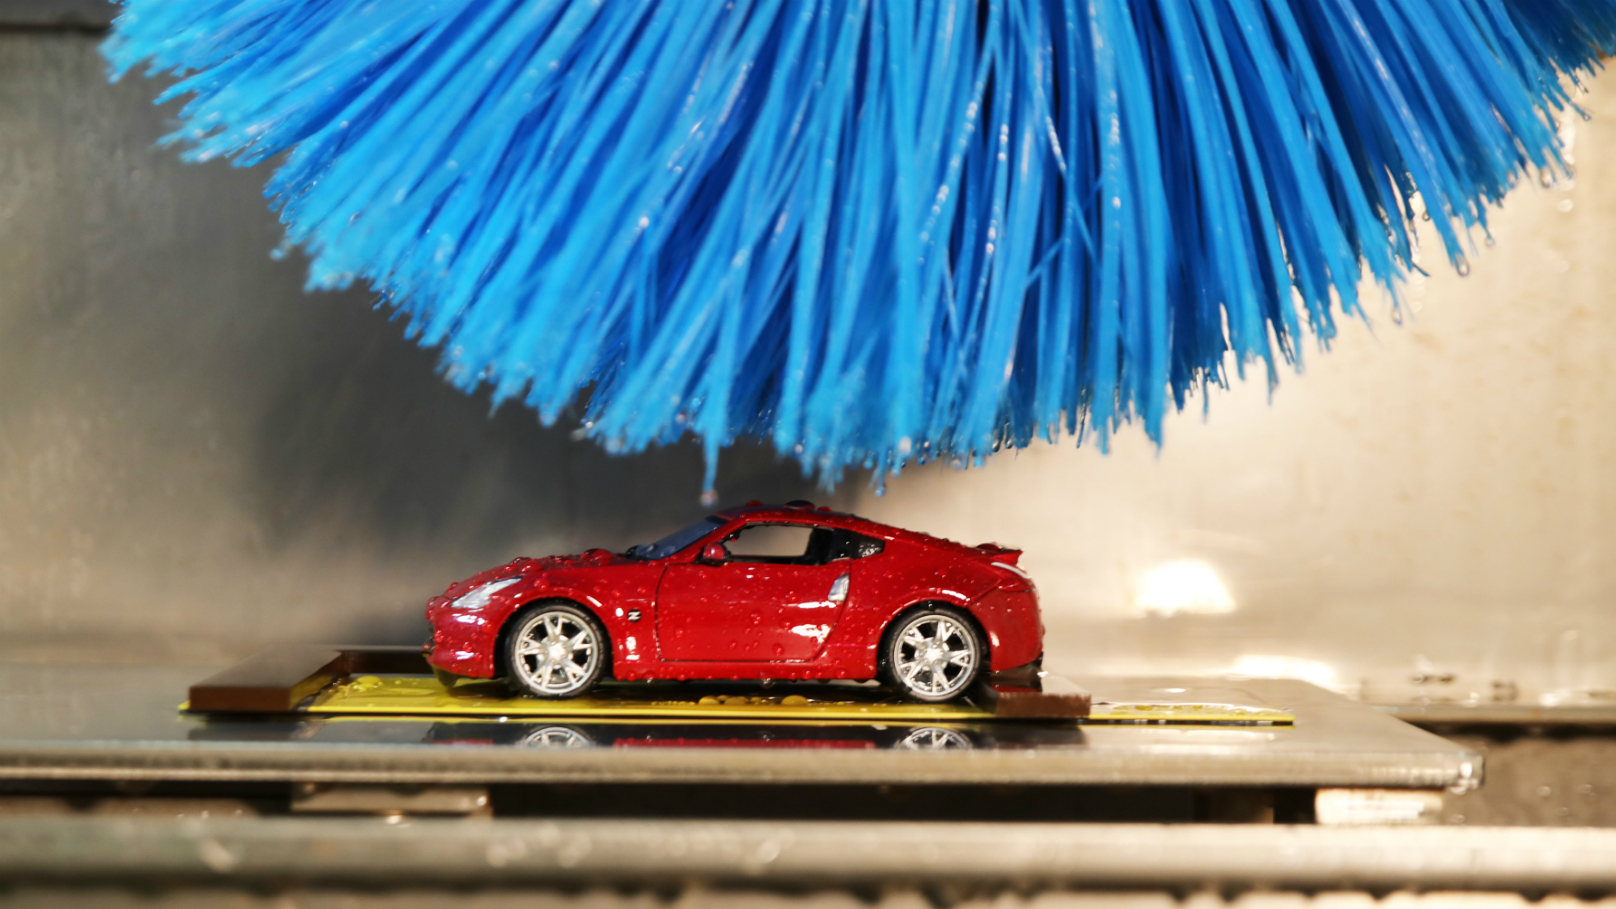 miniature car wash